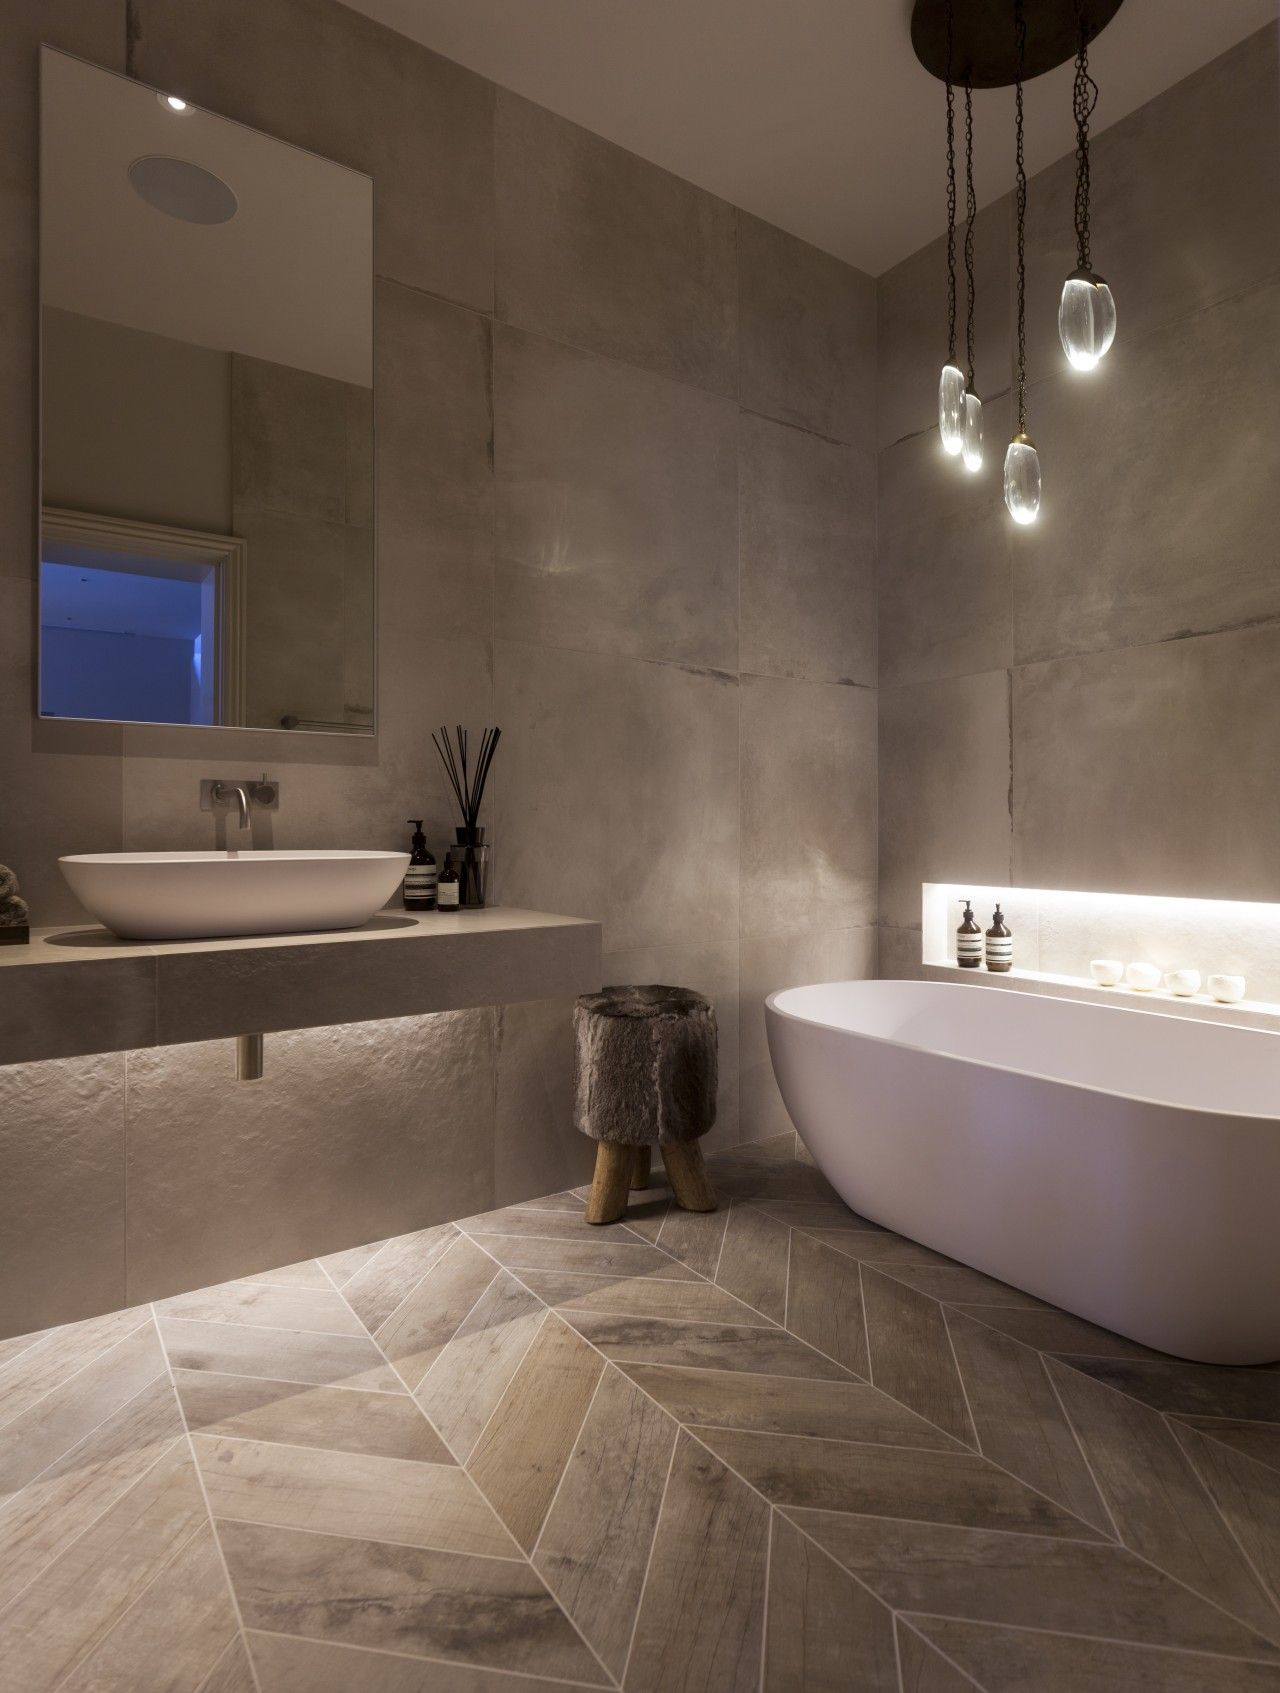 Private residence bath room janey butler interiors for Small luxury bathrooms ideas